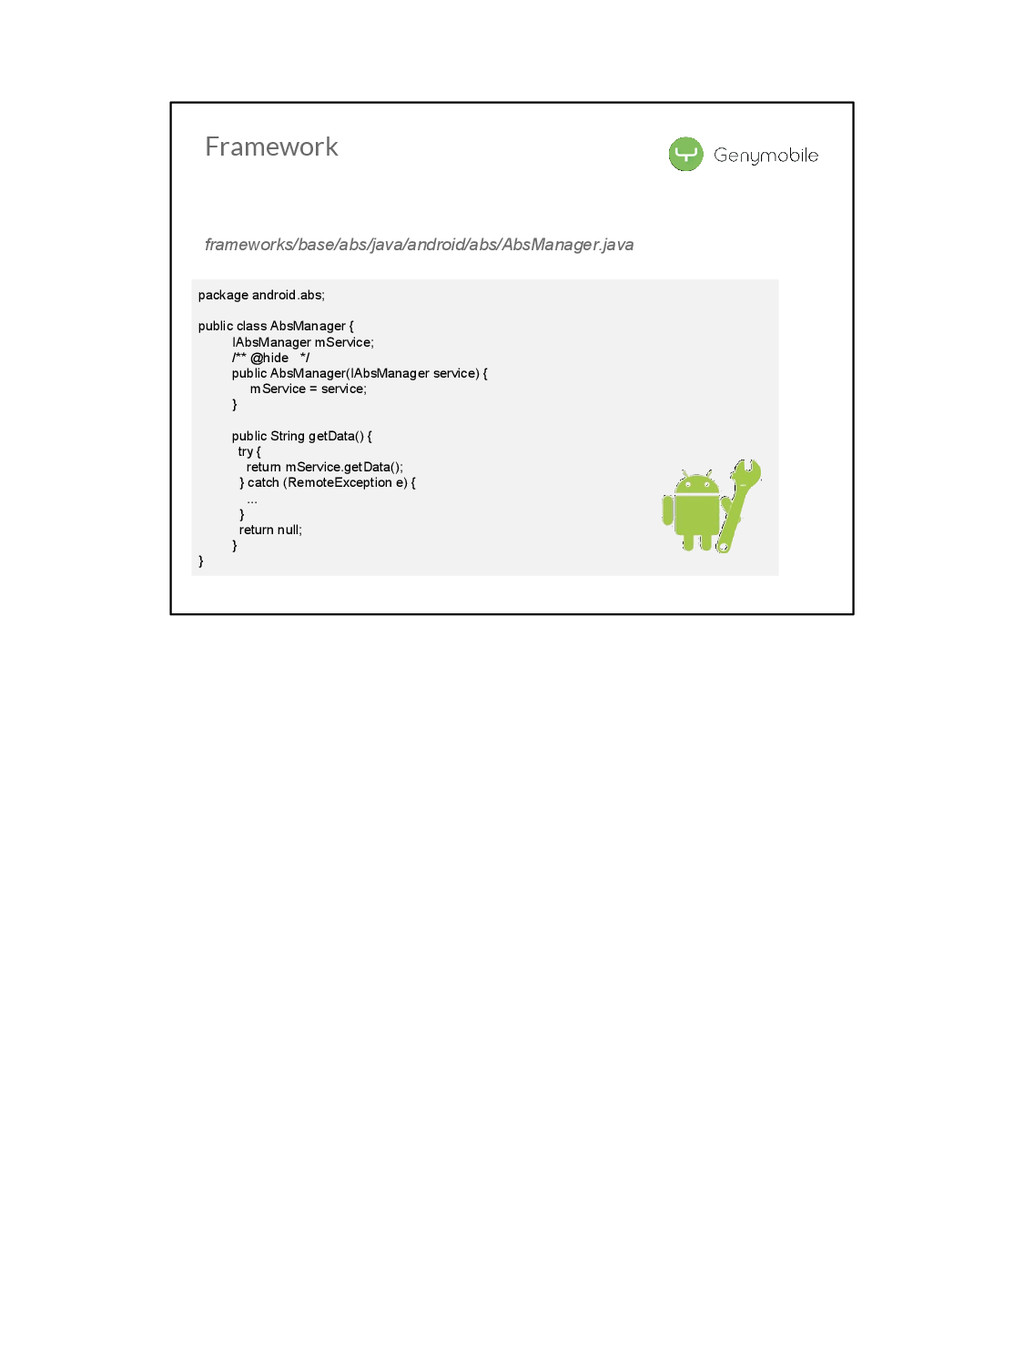 Framework package android.abs; public class Abs...